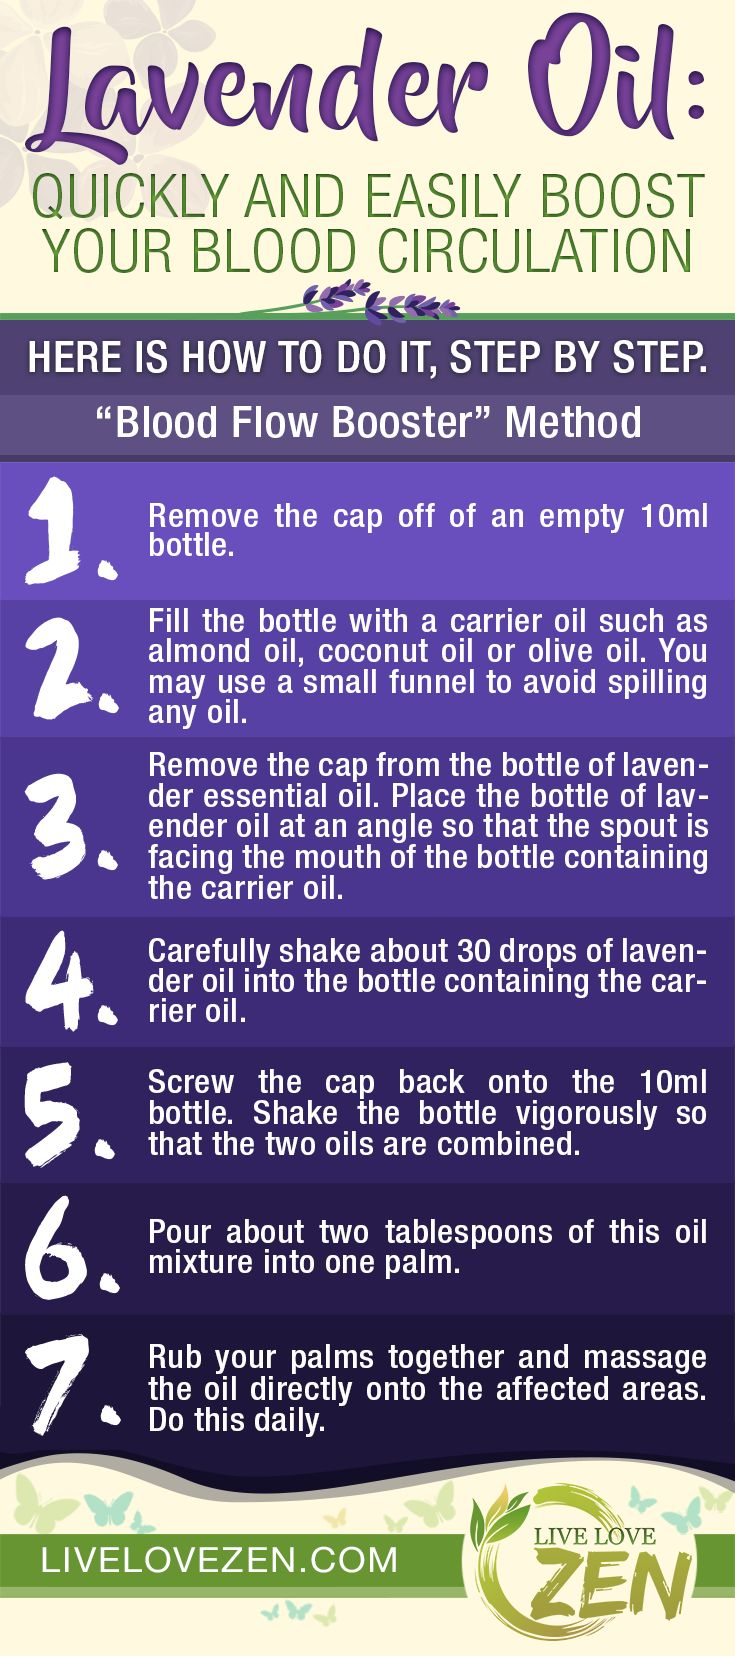 Lavender Oil: Quickly and Easily Boost Your Blood Circulation